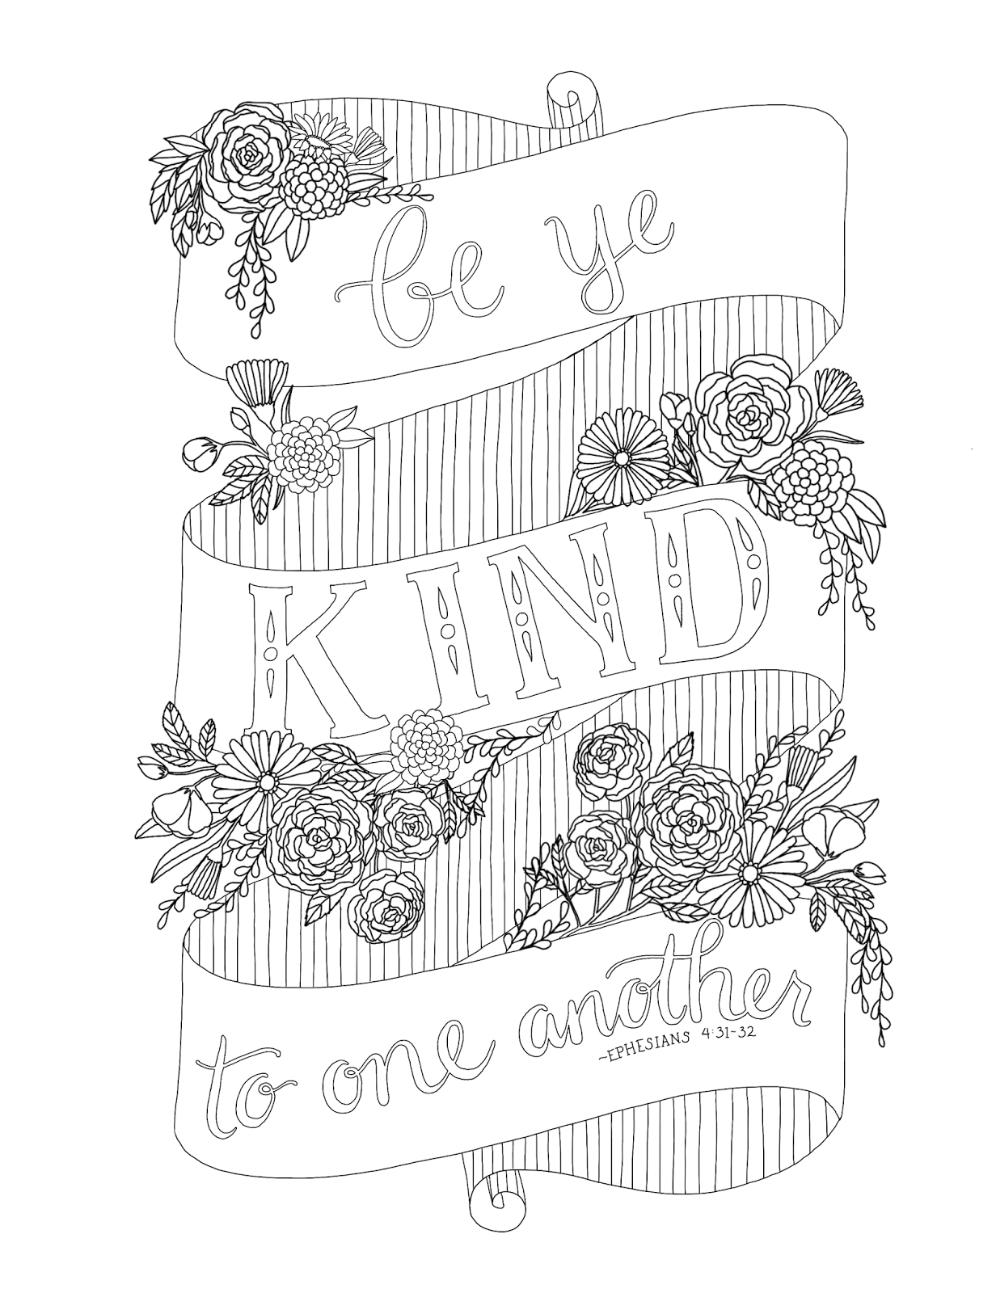 Just What I Squeeze In Be Ye Kind To One Another Coloring Page 22 Love Coloring Pages Sunday School Coloring Pages Coloring Pages